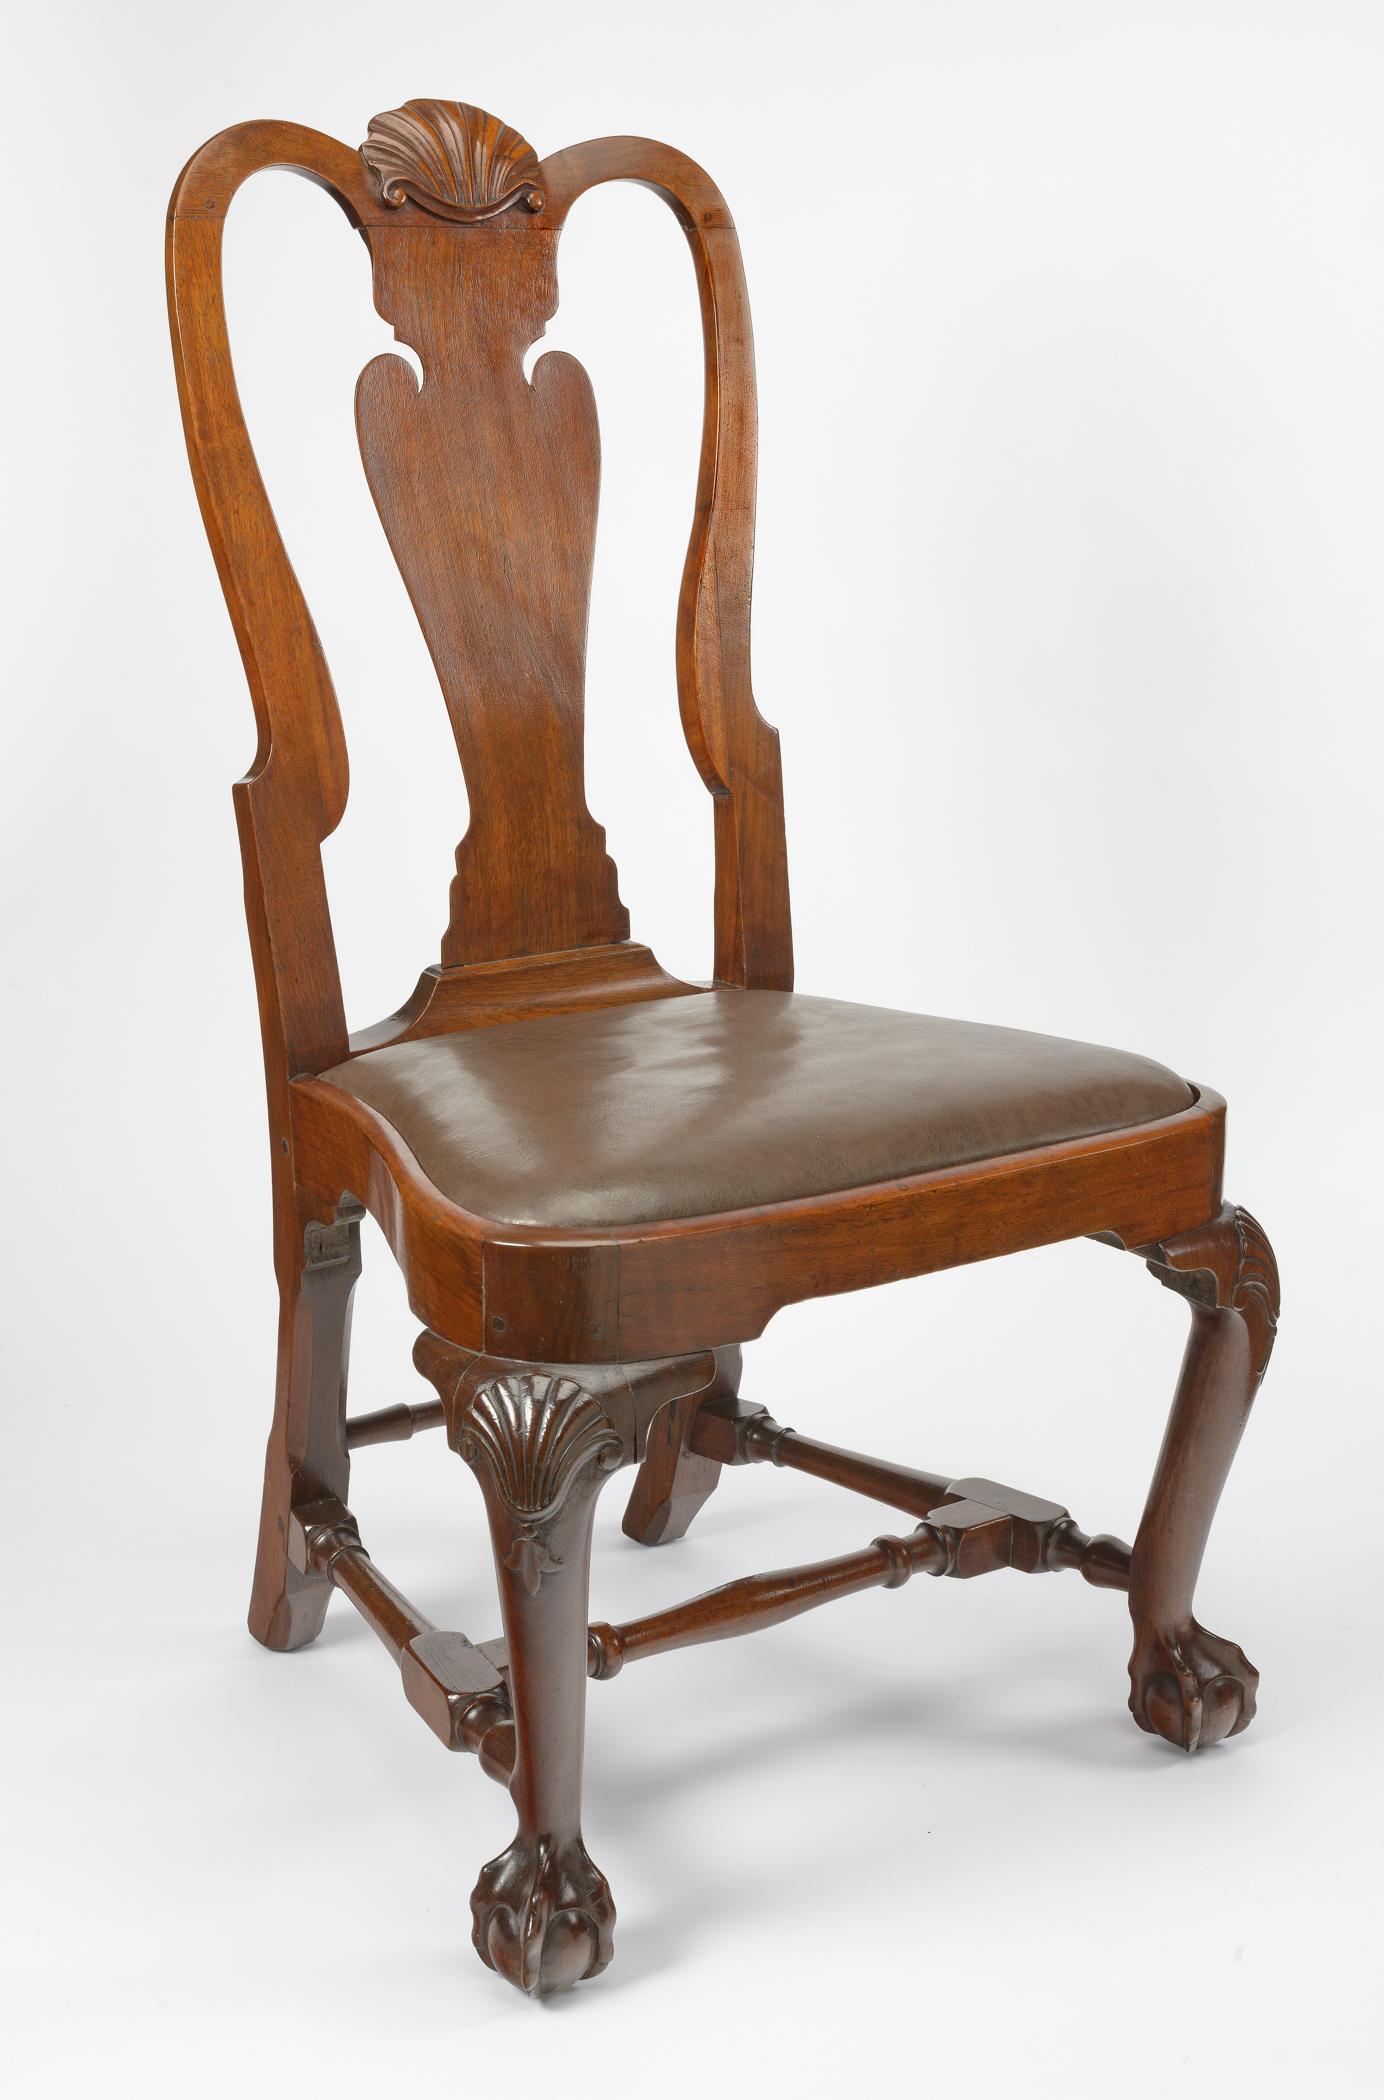 Image: Object No. 1960.0719.002. Walnut Side Chair With Compass Seat With  Brown Leather Slipseat, Cabriole Front Legs, And Ball And Claw Feet, ...